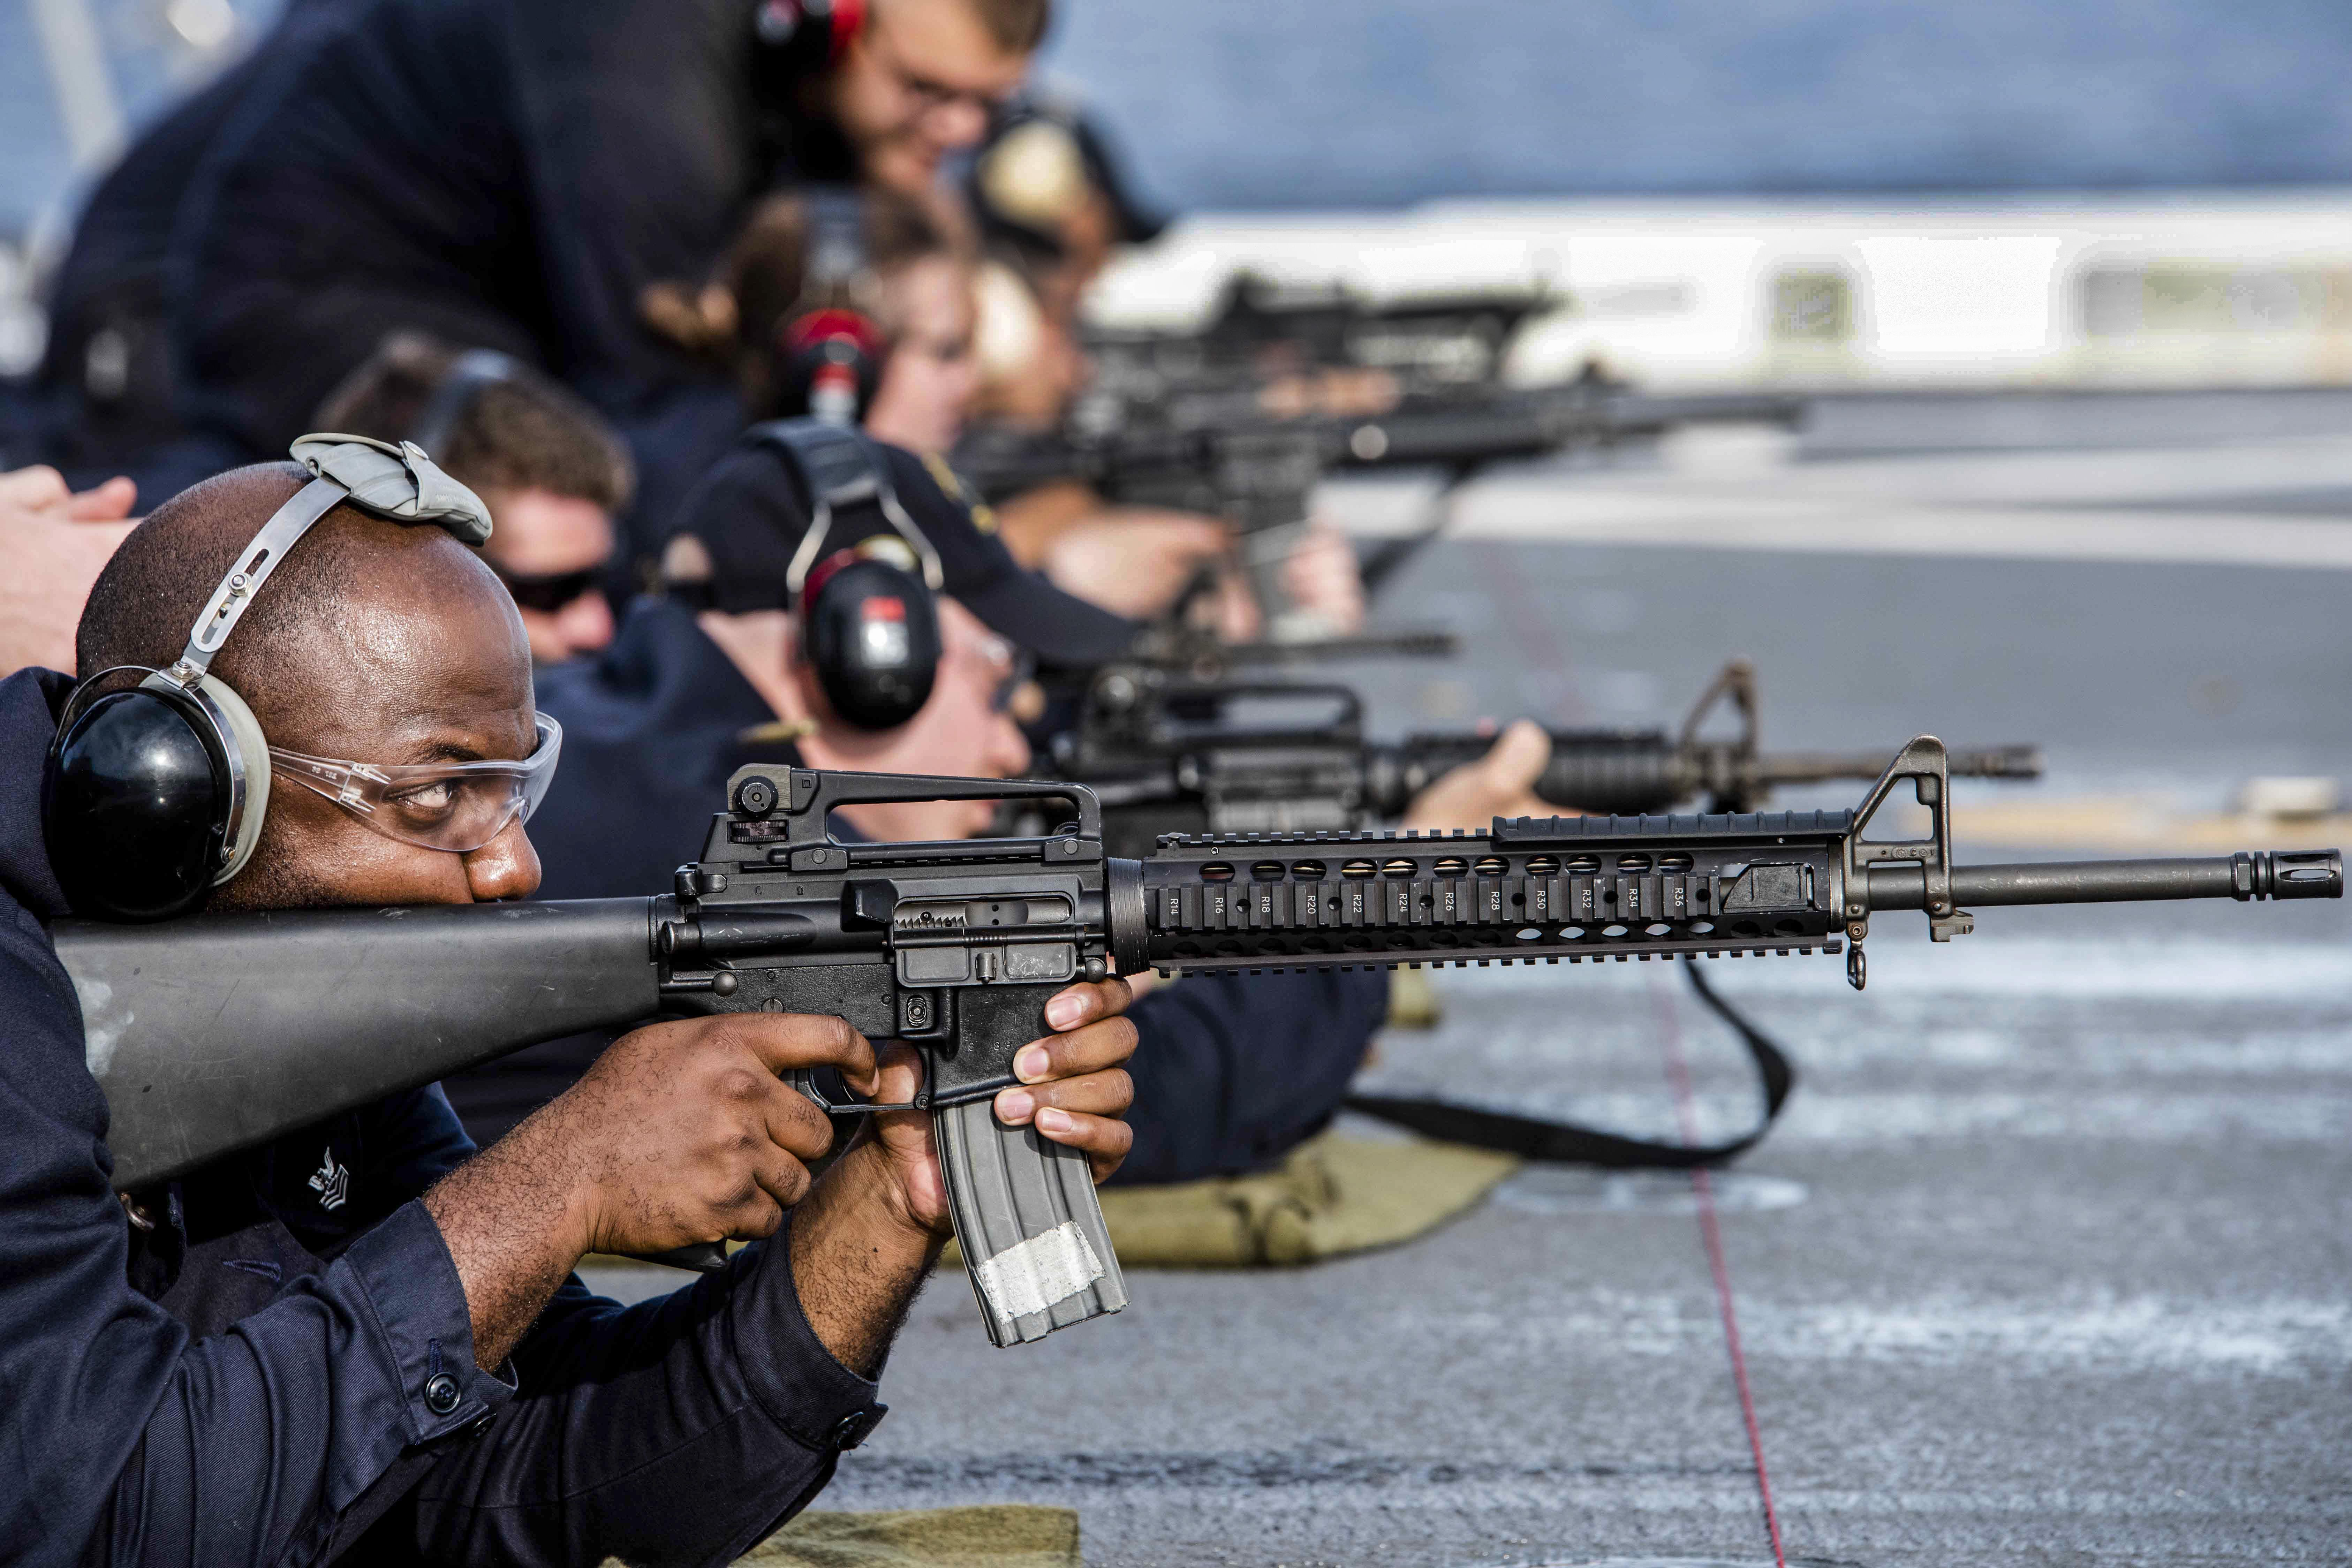 the m16 essay spc nestler essay on accountability 26 january 2010 having the proper  maintaining accountability  there is a range for qualification on the m16 carbine, .